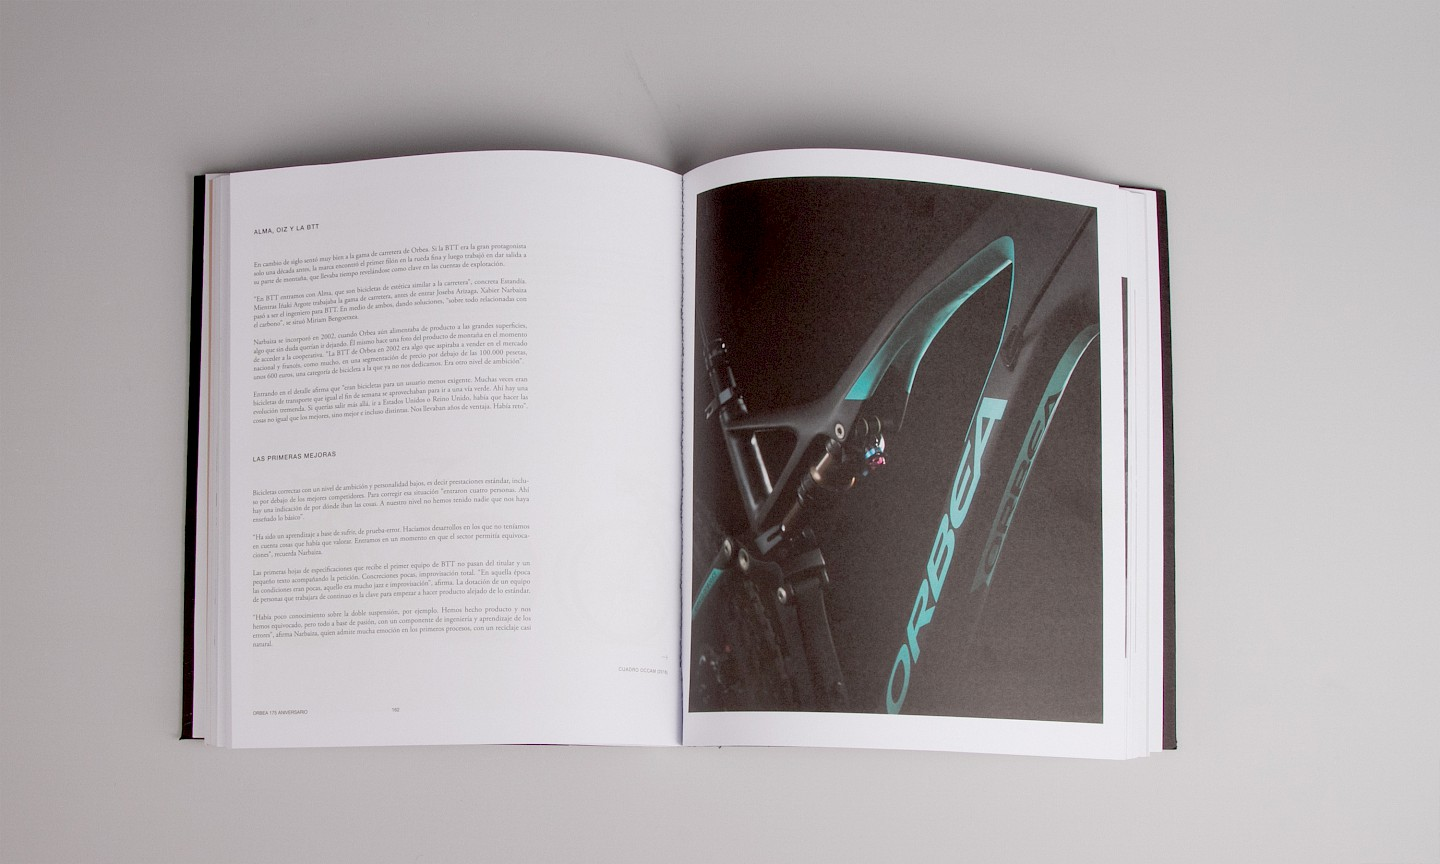 book 03 1 editorial branding design move sports spaces lifestyle orbea narrative